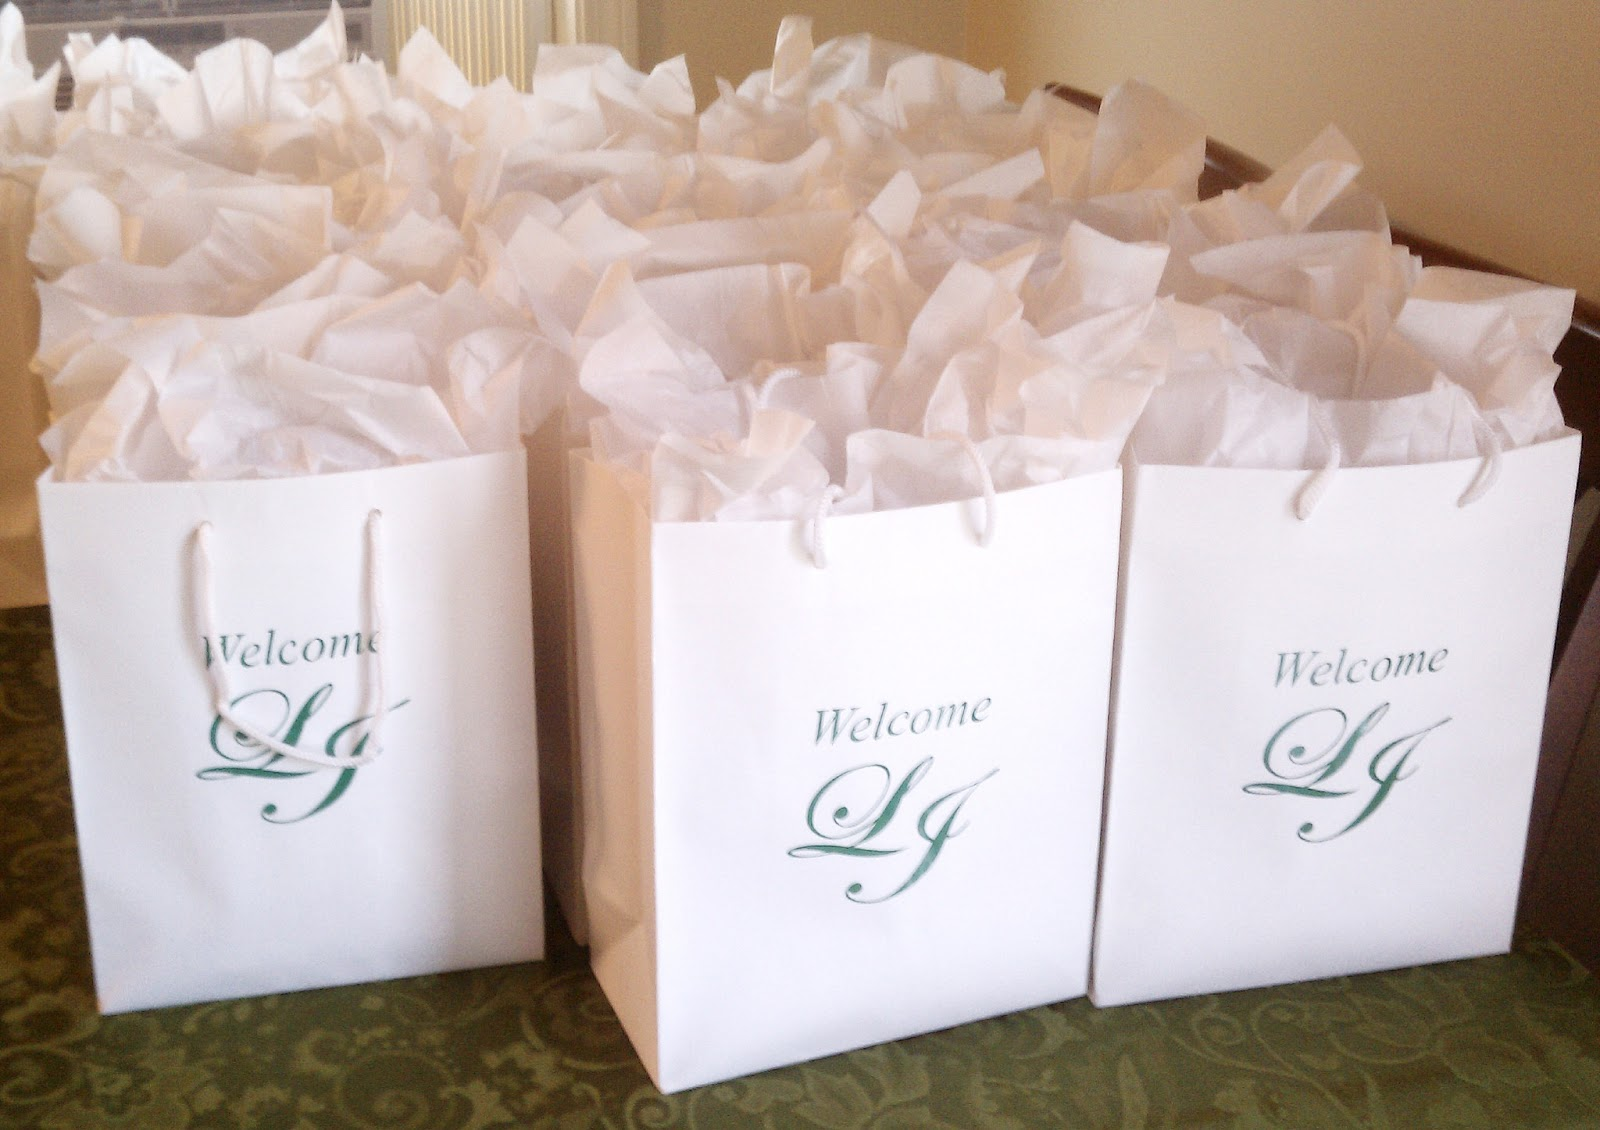 Wedding Hotel Gift Bag Message : Eutopia Events: Wedding Day Welcome Bags